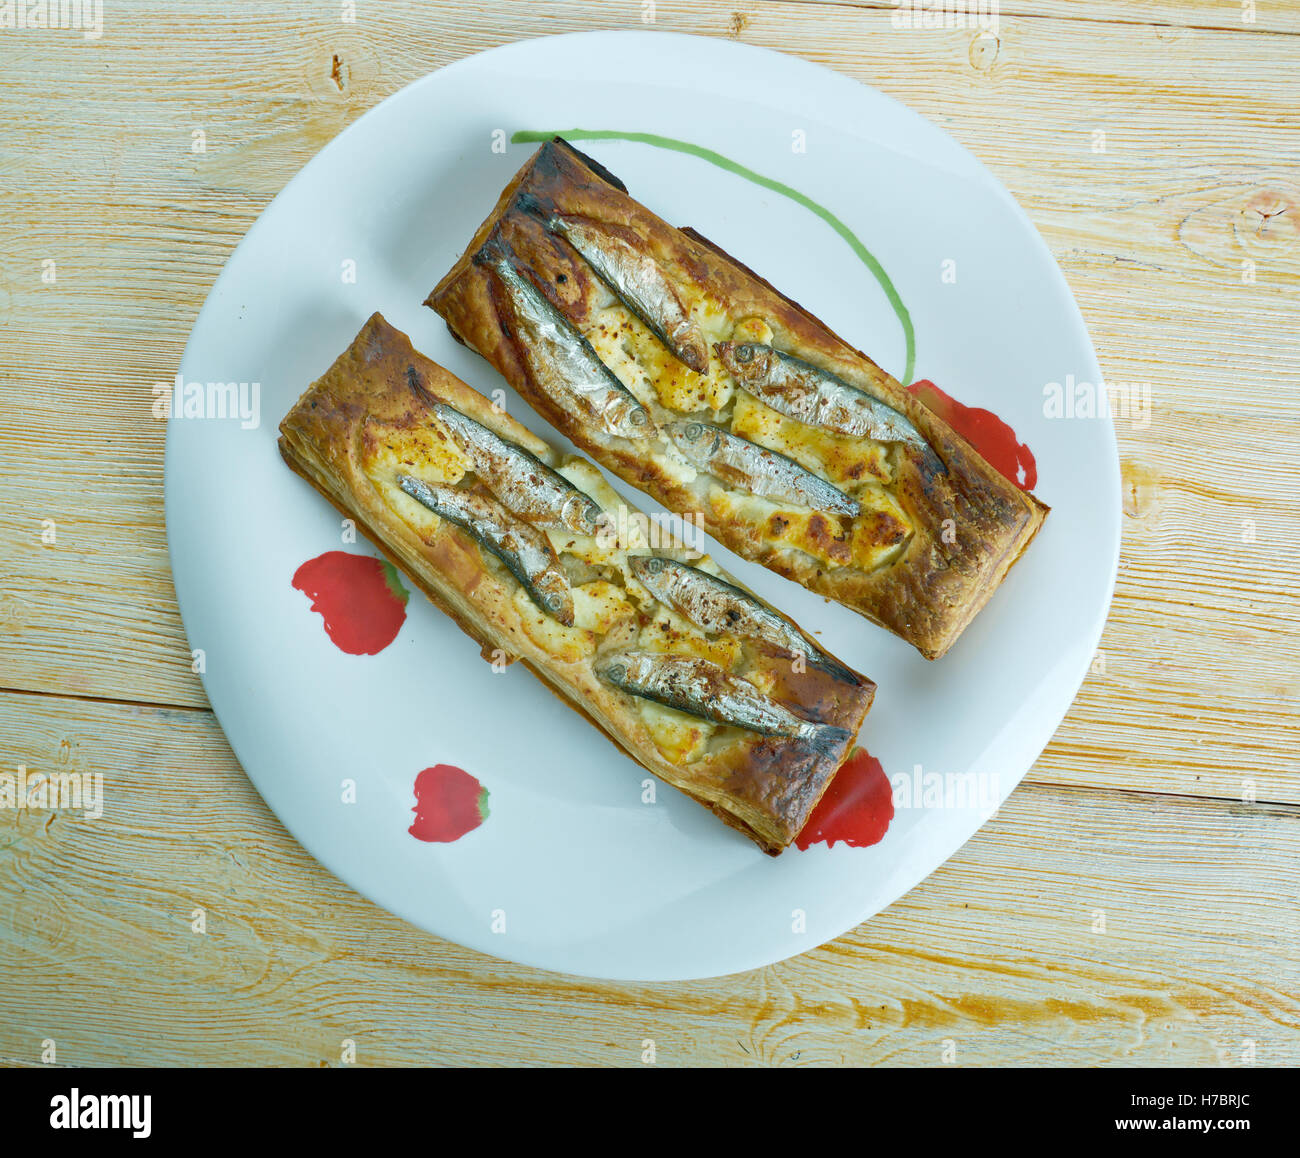 Pastry tart with anchovies. French cuisine - Stock Image